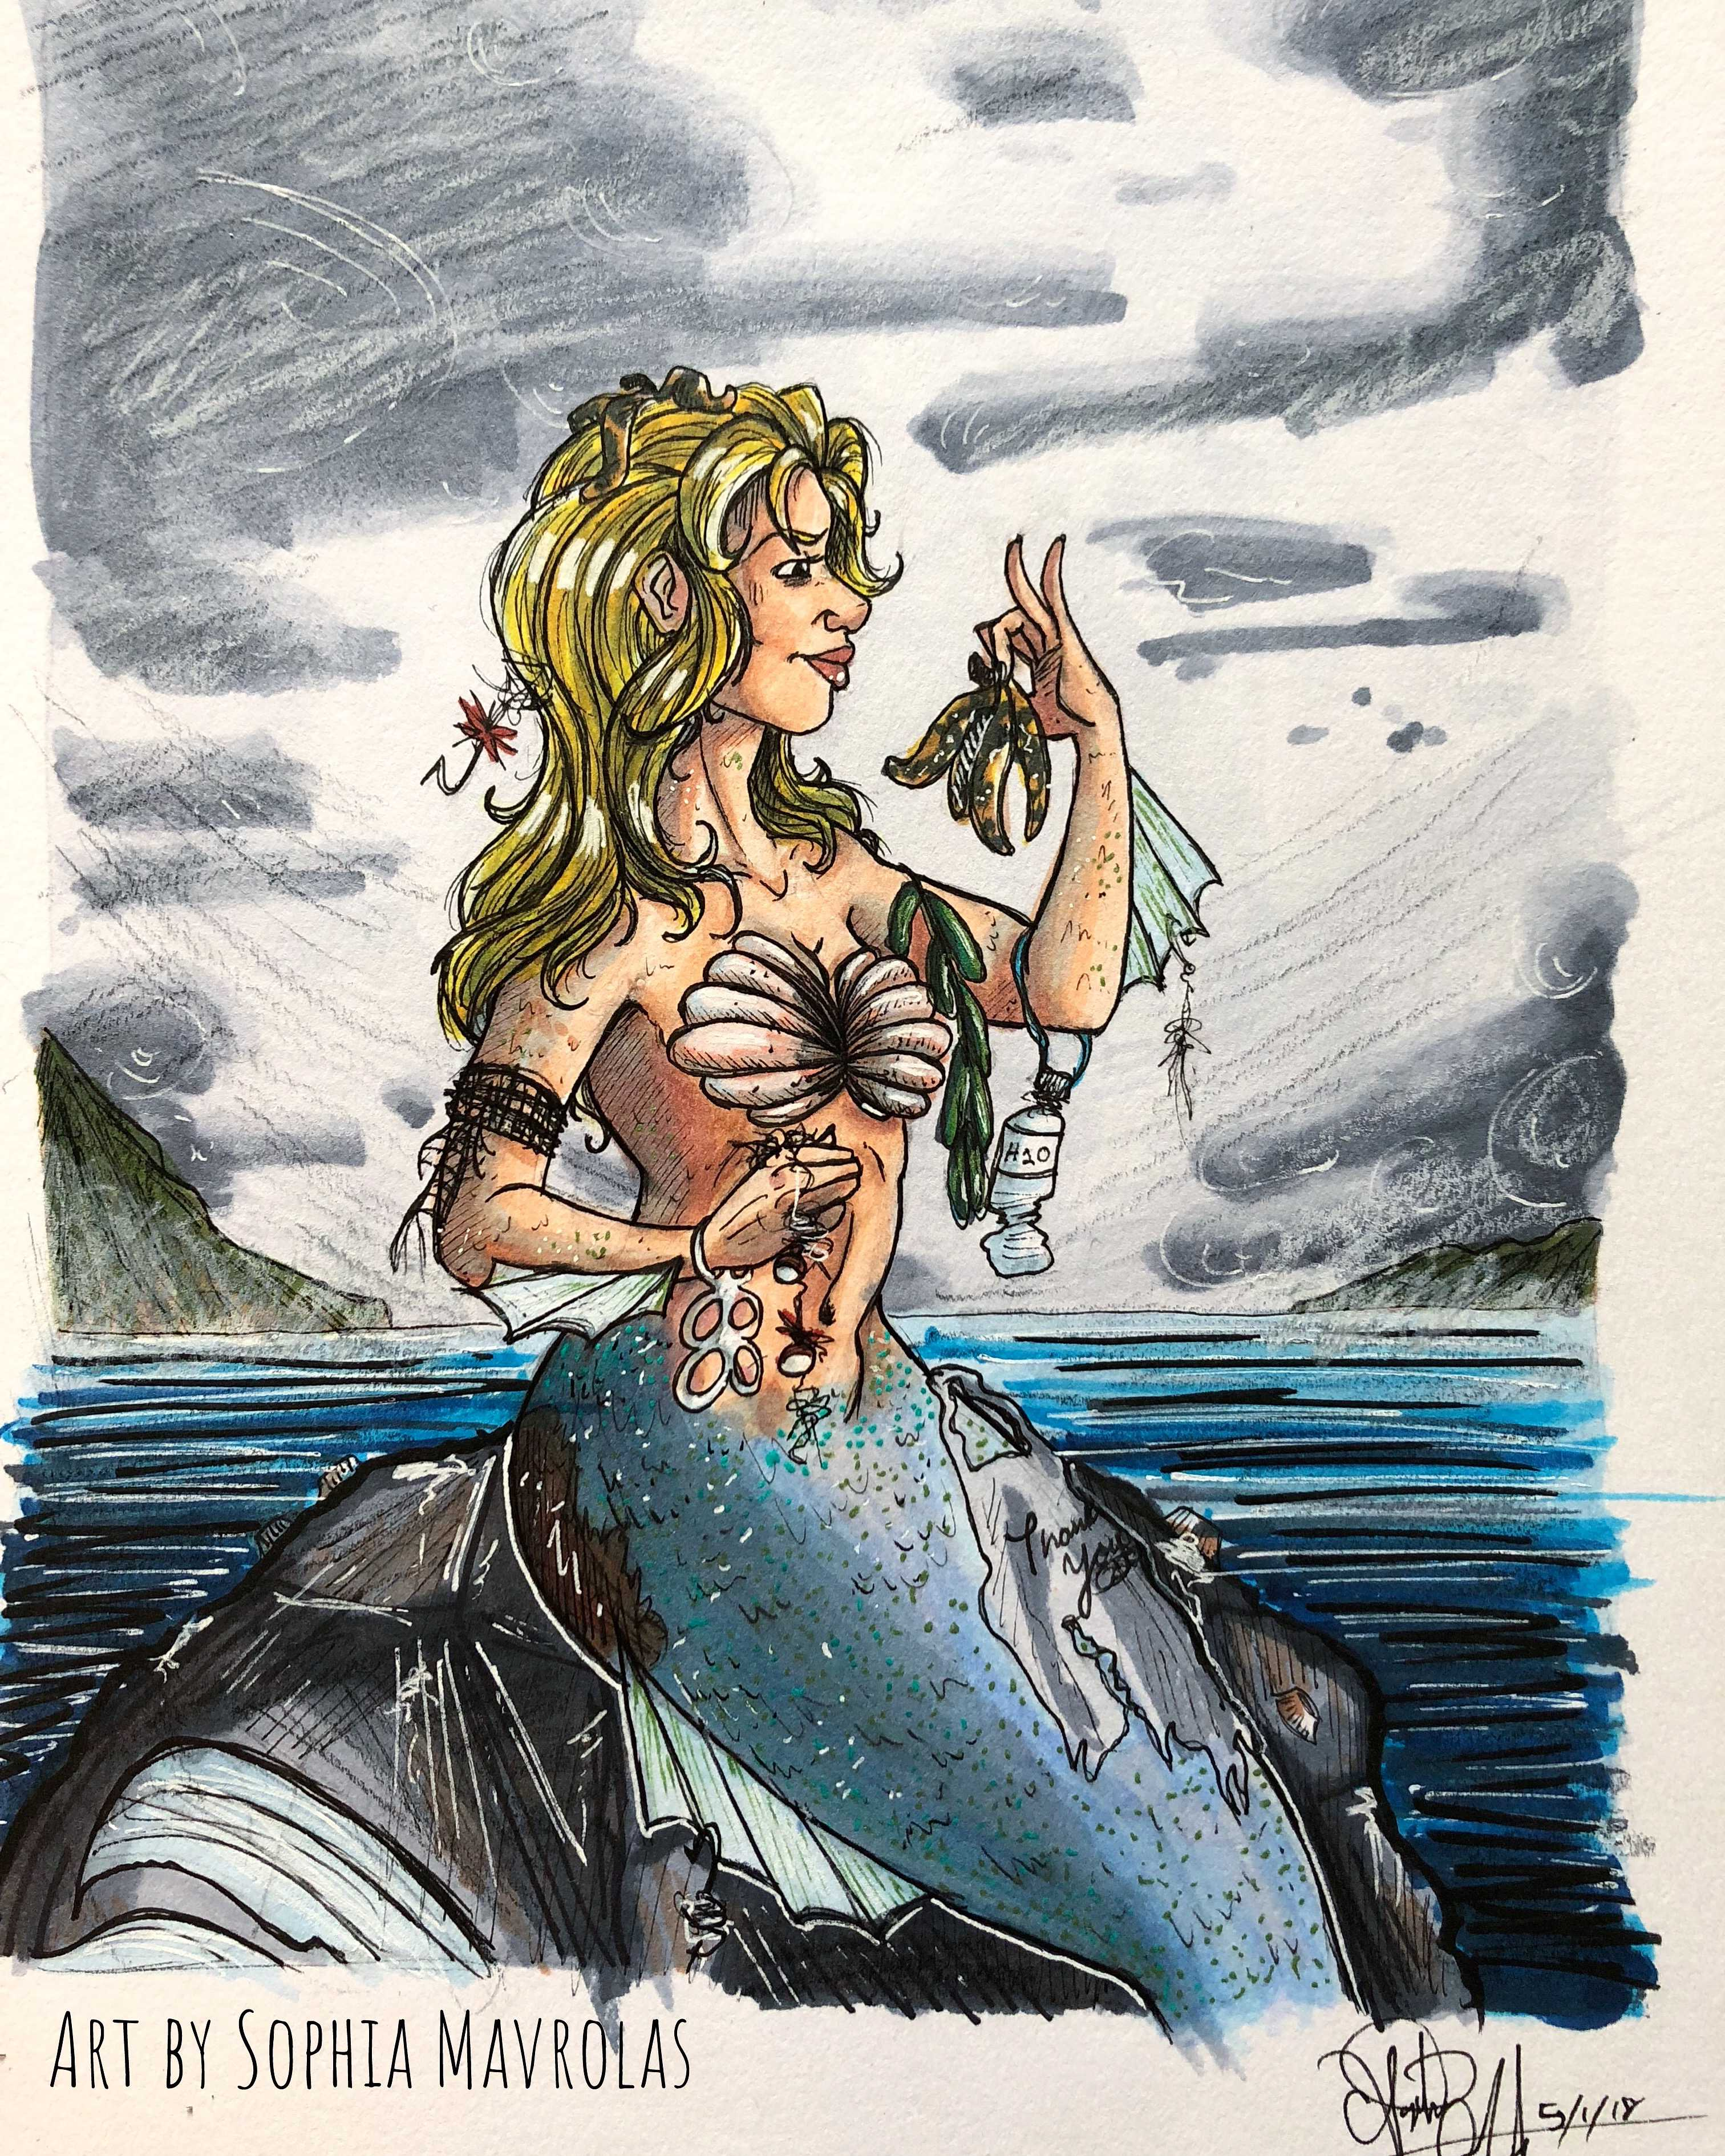 Part of Save the Mermaid Series illustrated by CSUN artist Sophia Mavrolas.